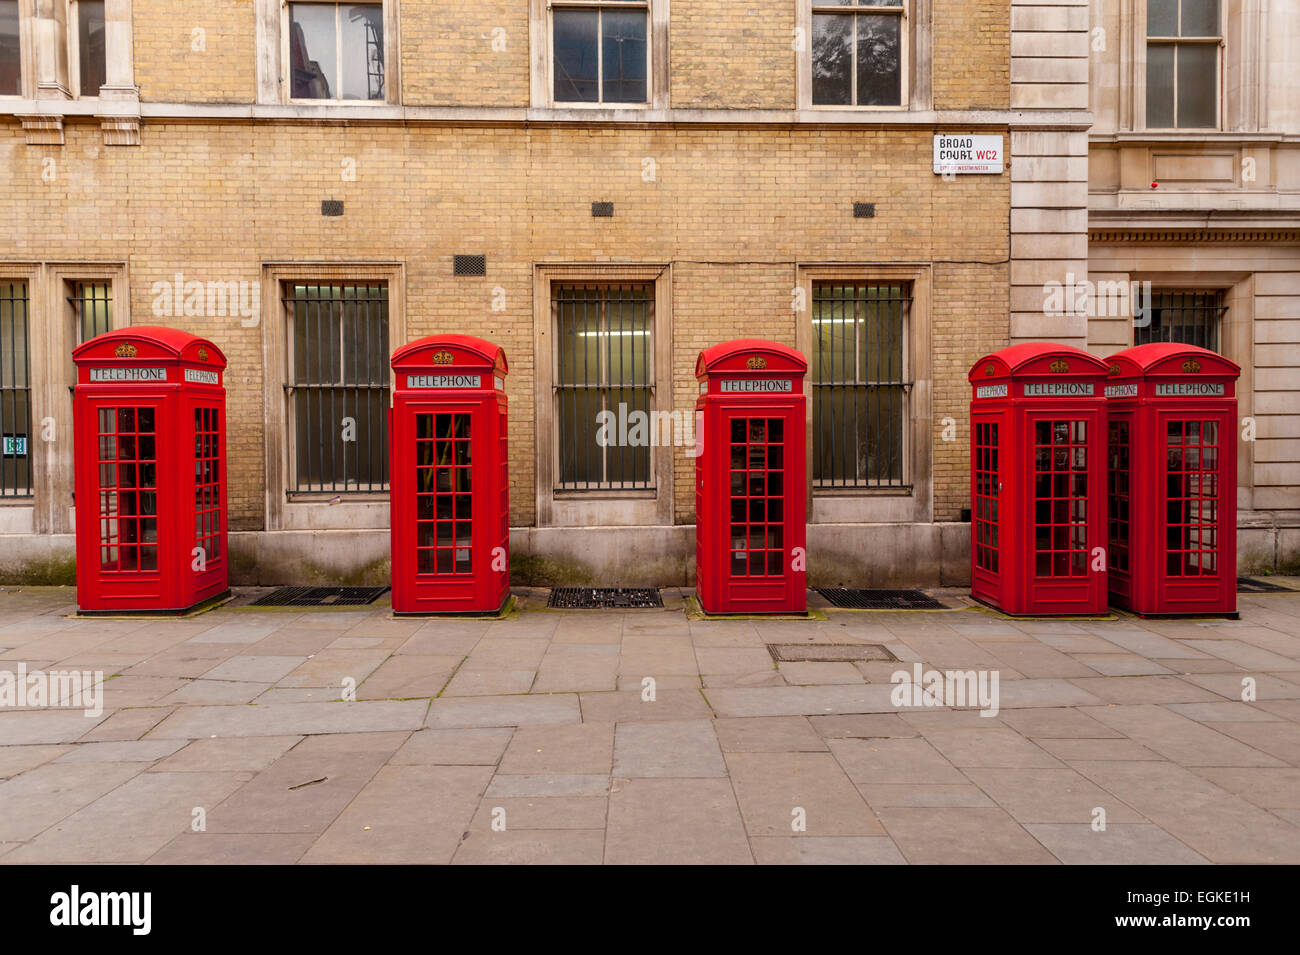 Row of red phoneboxes in Broad court, Drury lane London - Stock Image